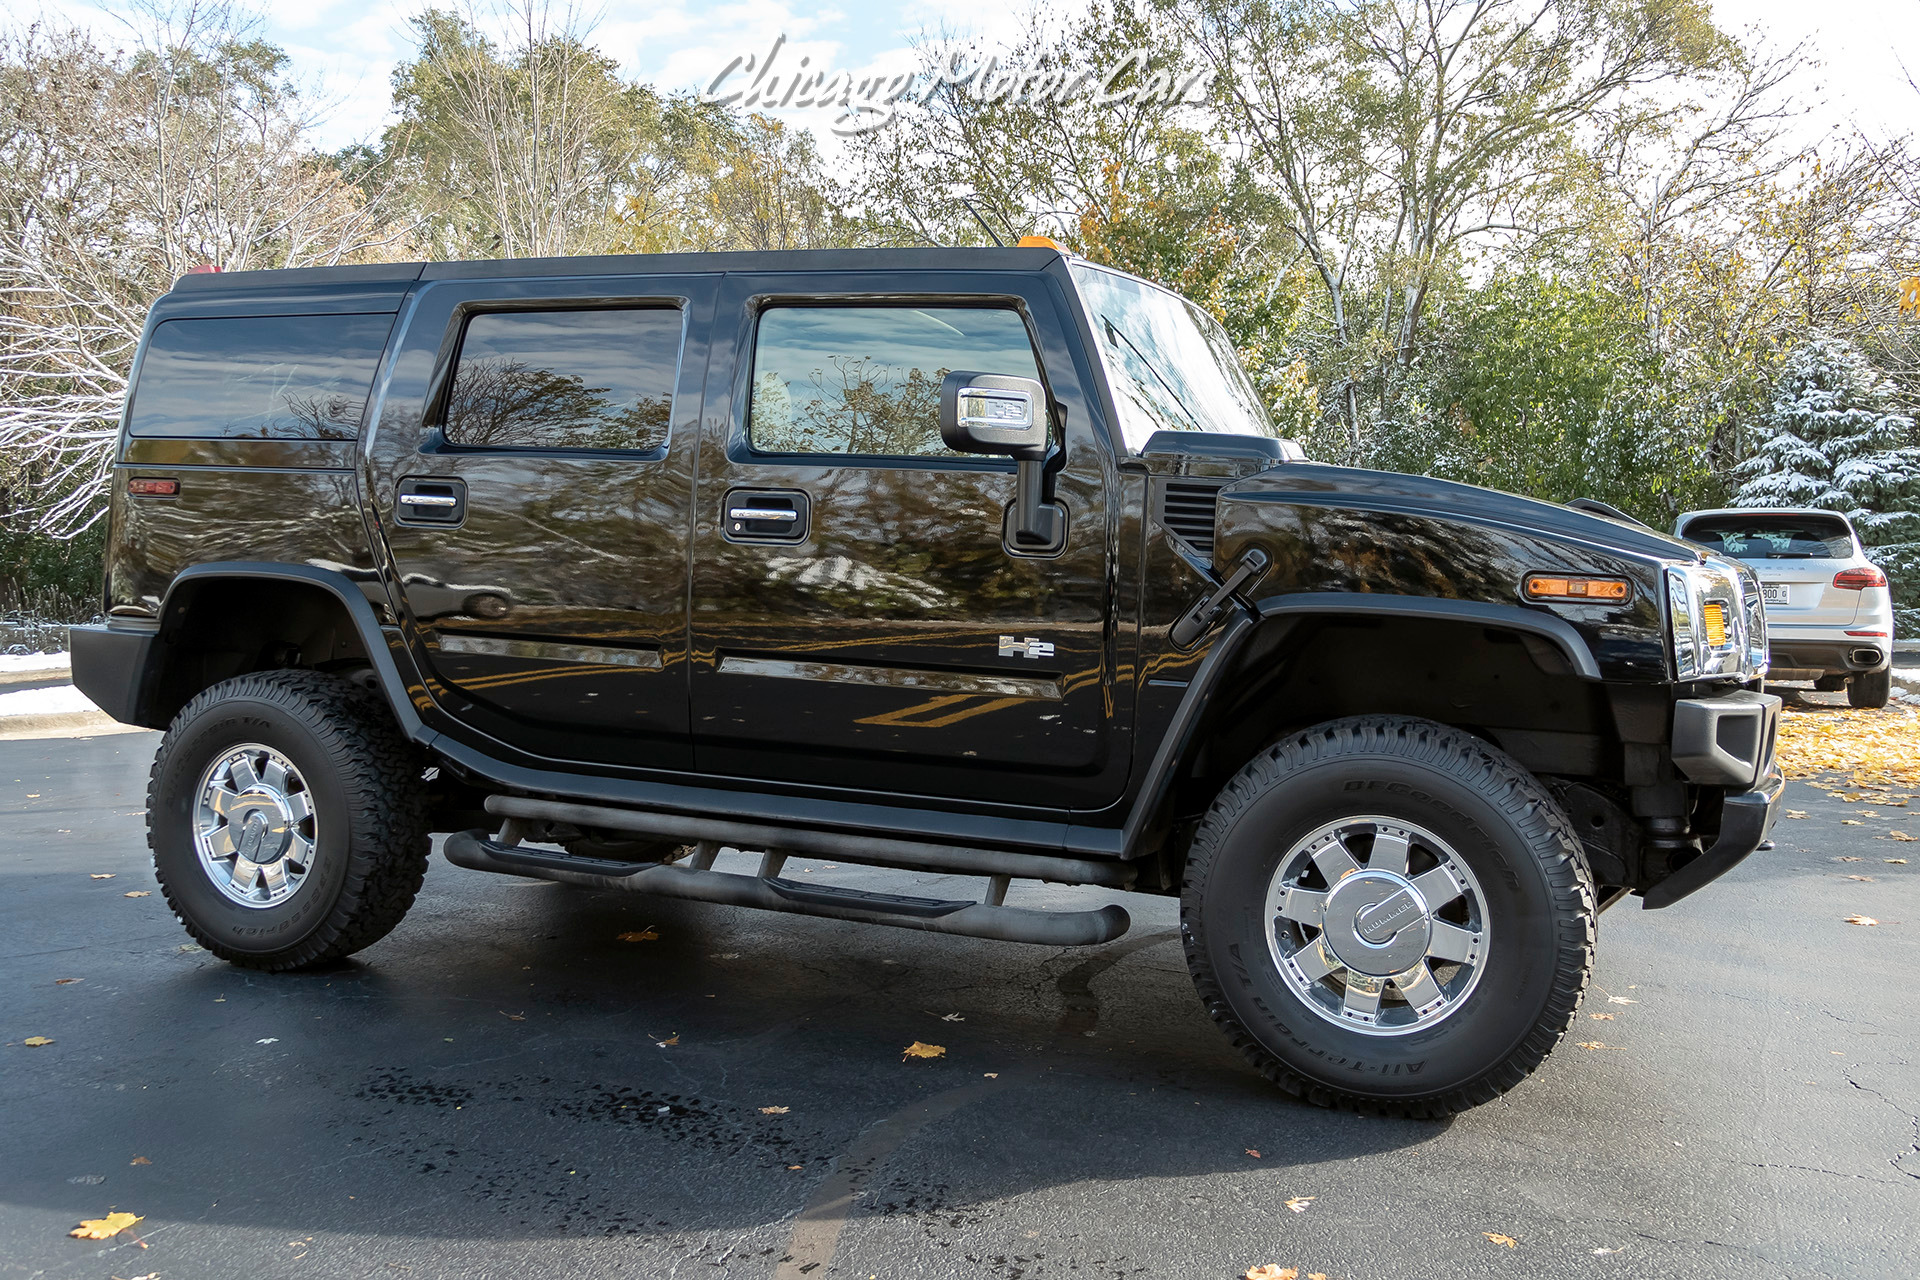 Used-2003-HUMMER-H2-Lux-Series-4x4